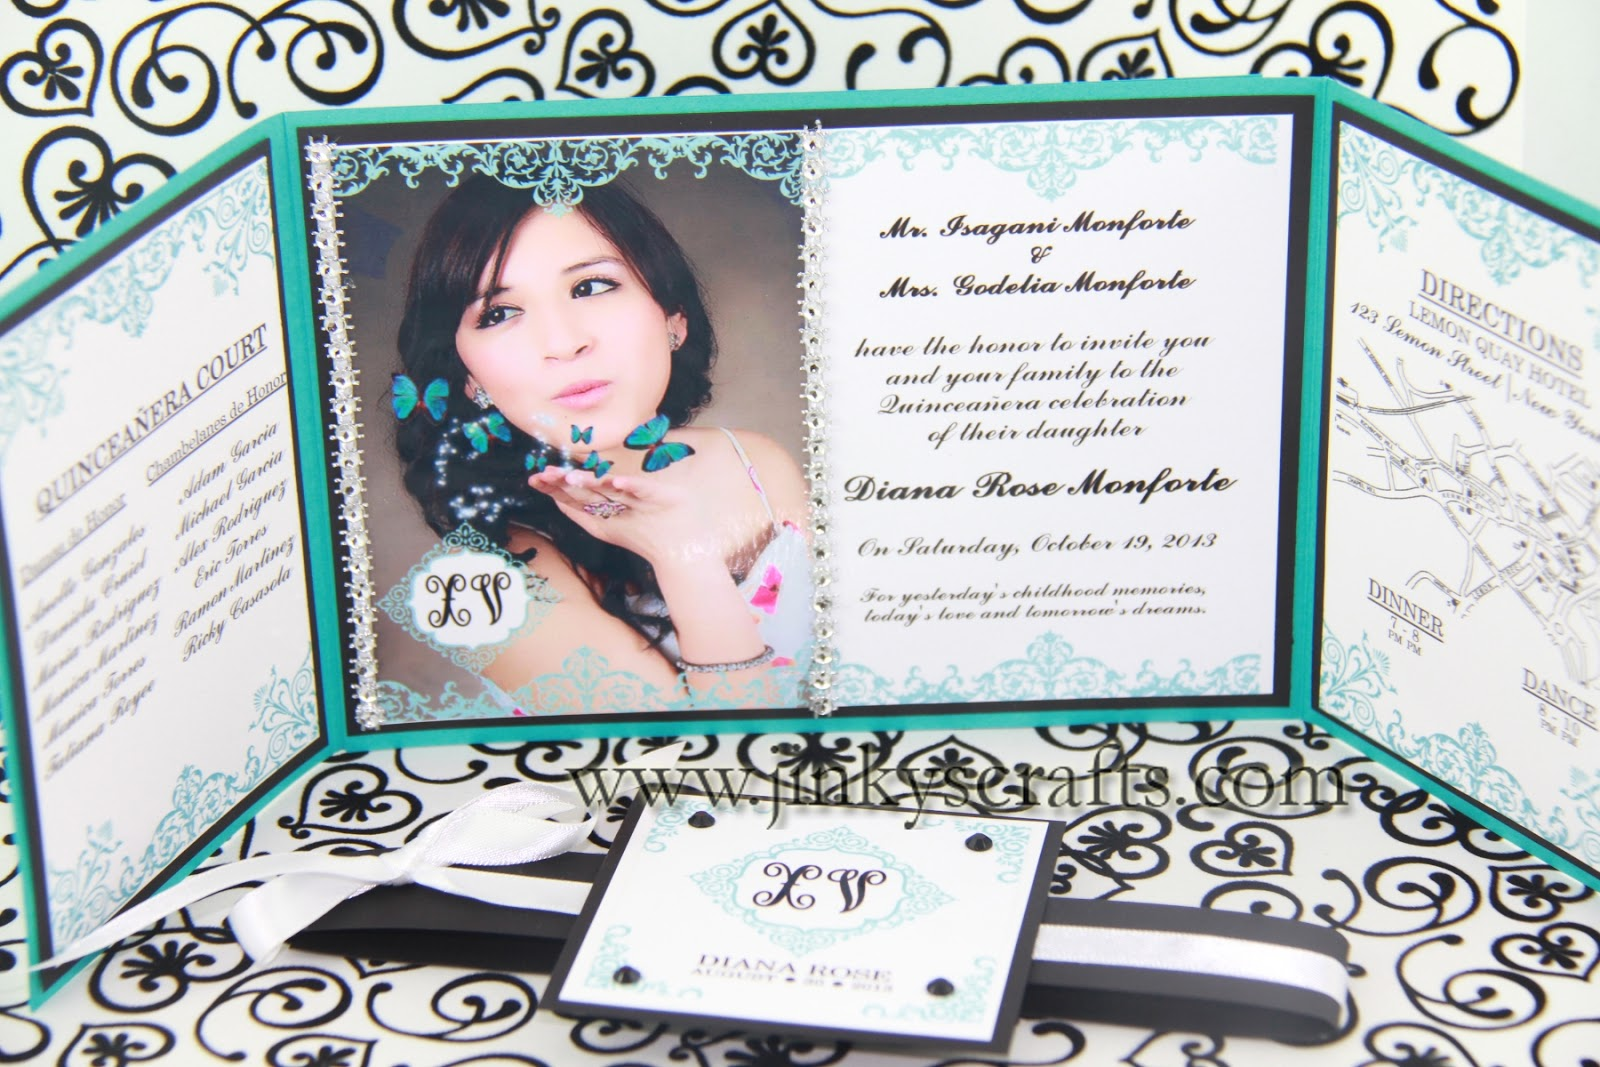 Paris Themed Quinceanera Invitations with good invitations layout